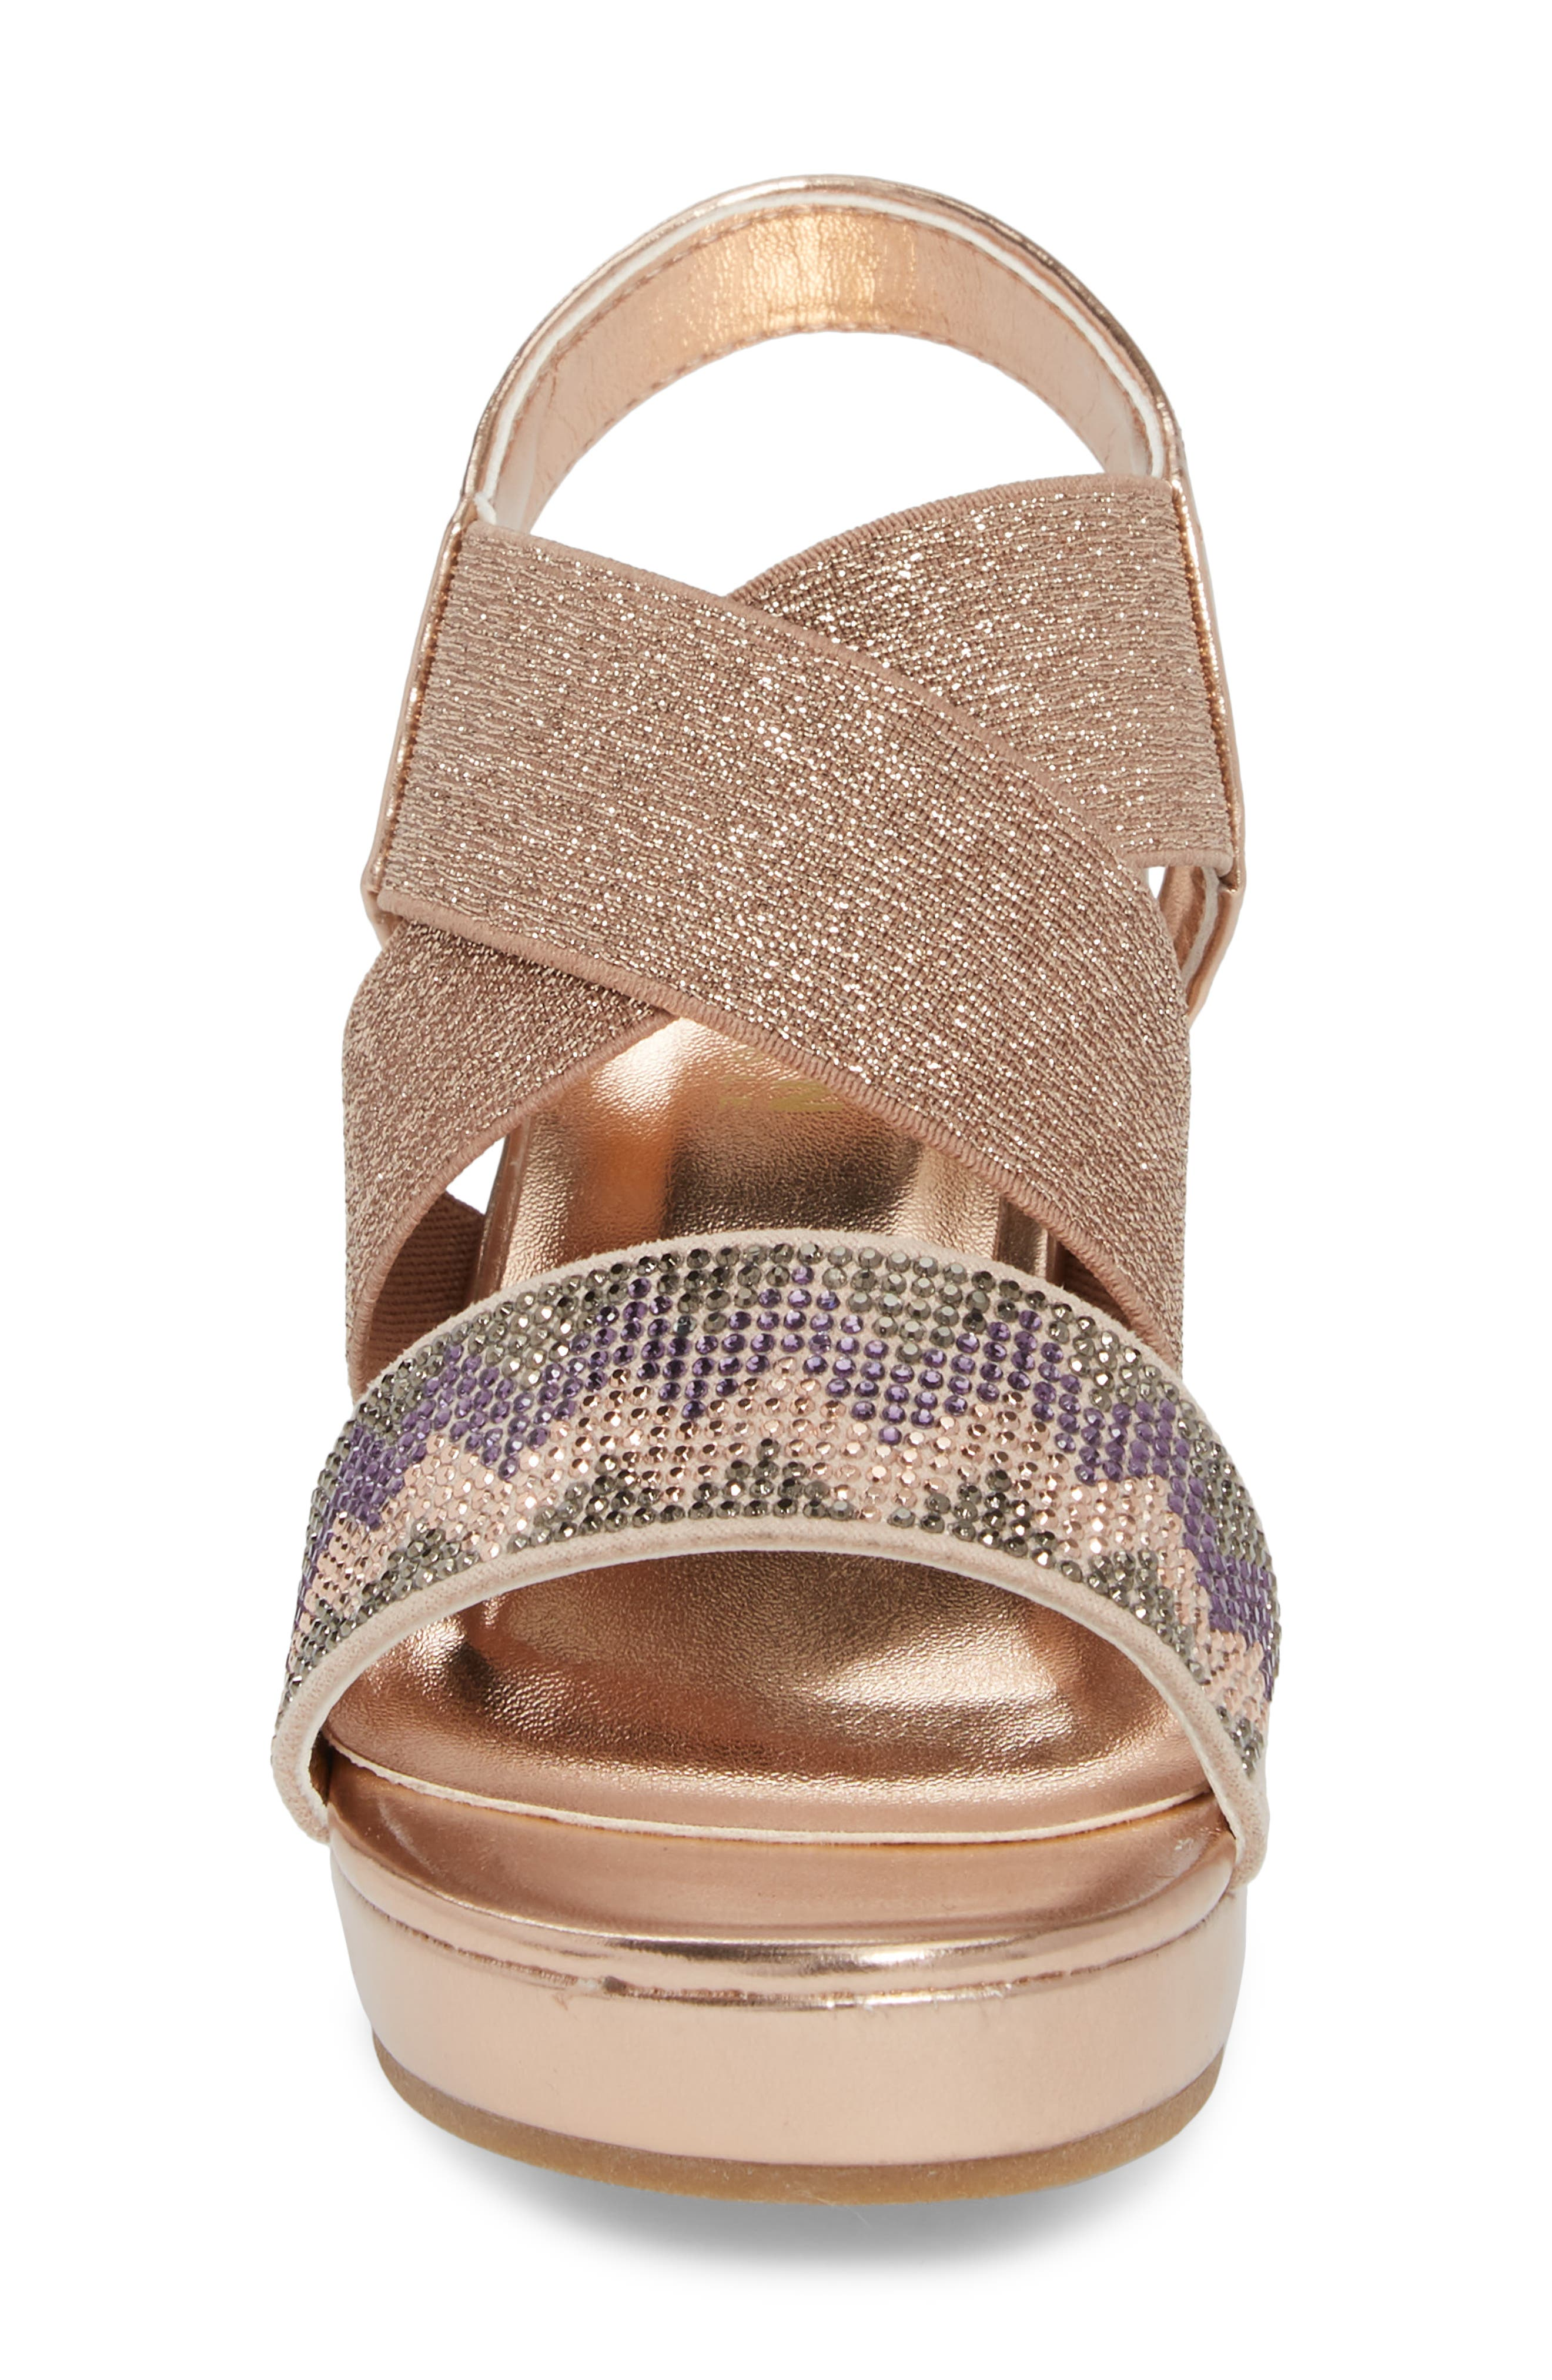 Reaction Kenneth Cole Reed Mamba Embellished Wedge Sandal,                             Alternate thumbnail 4, color,                             Rose Metallic